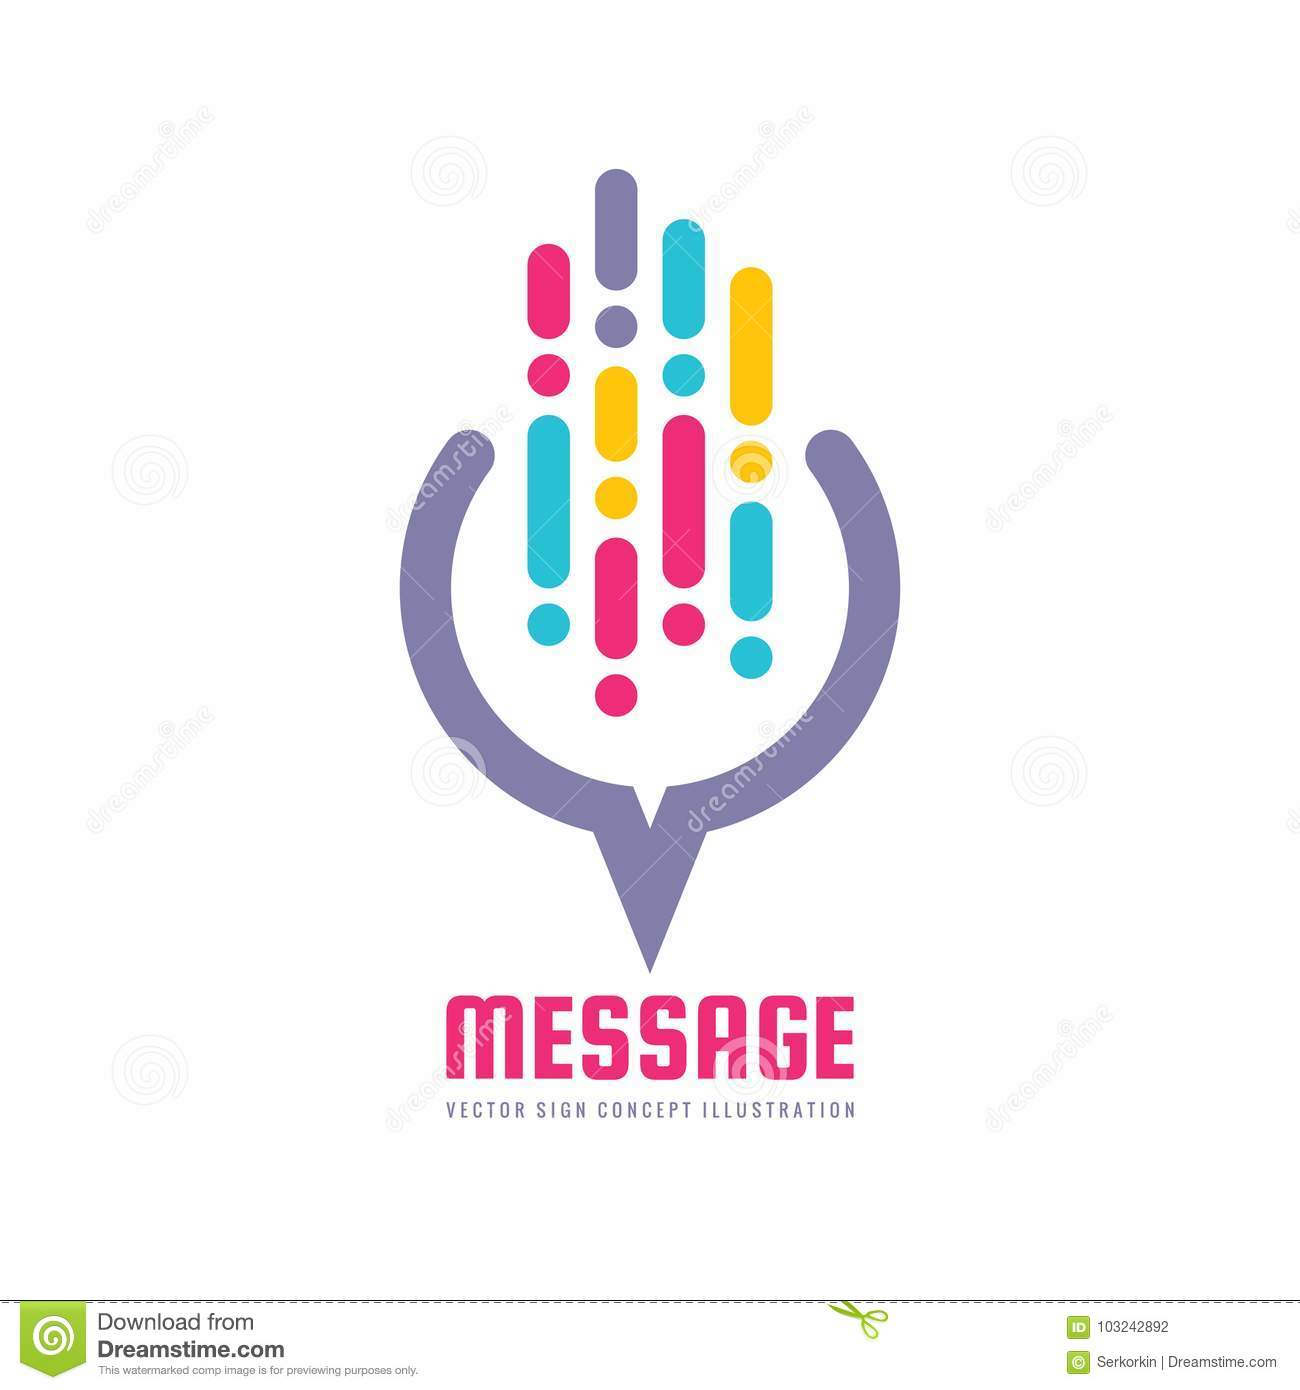 Message - vector logo template concept illustration in flat style. Abstract web communication creative sign. Social media.